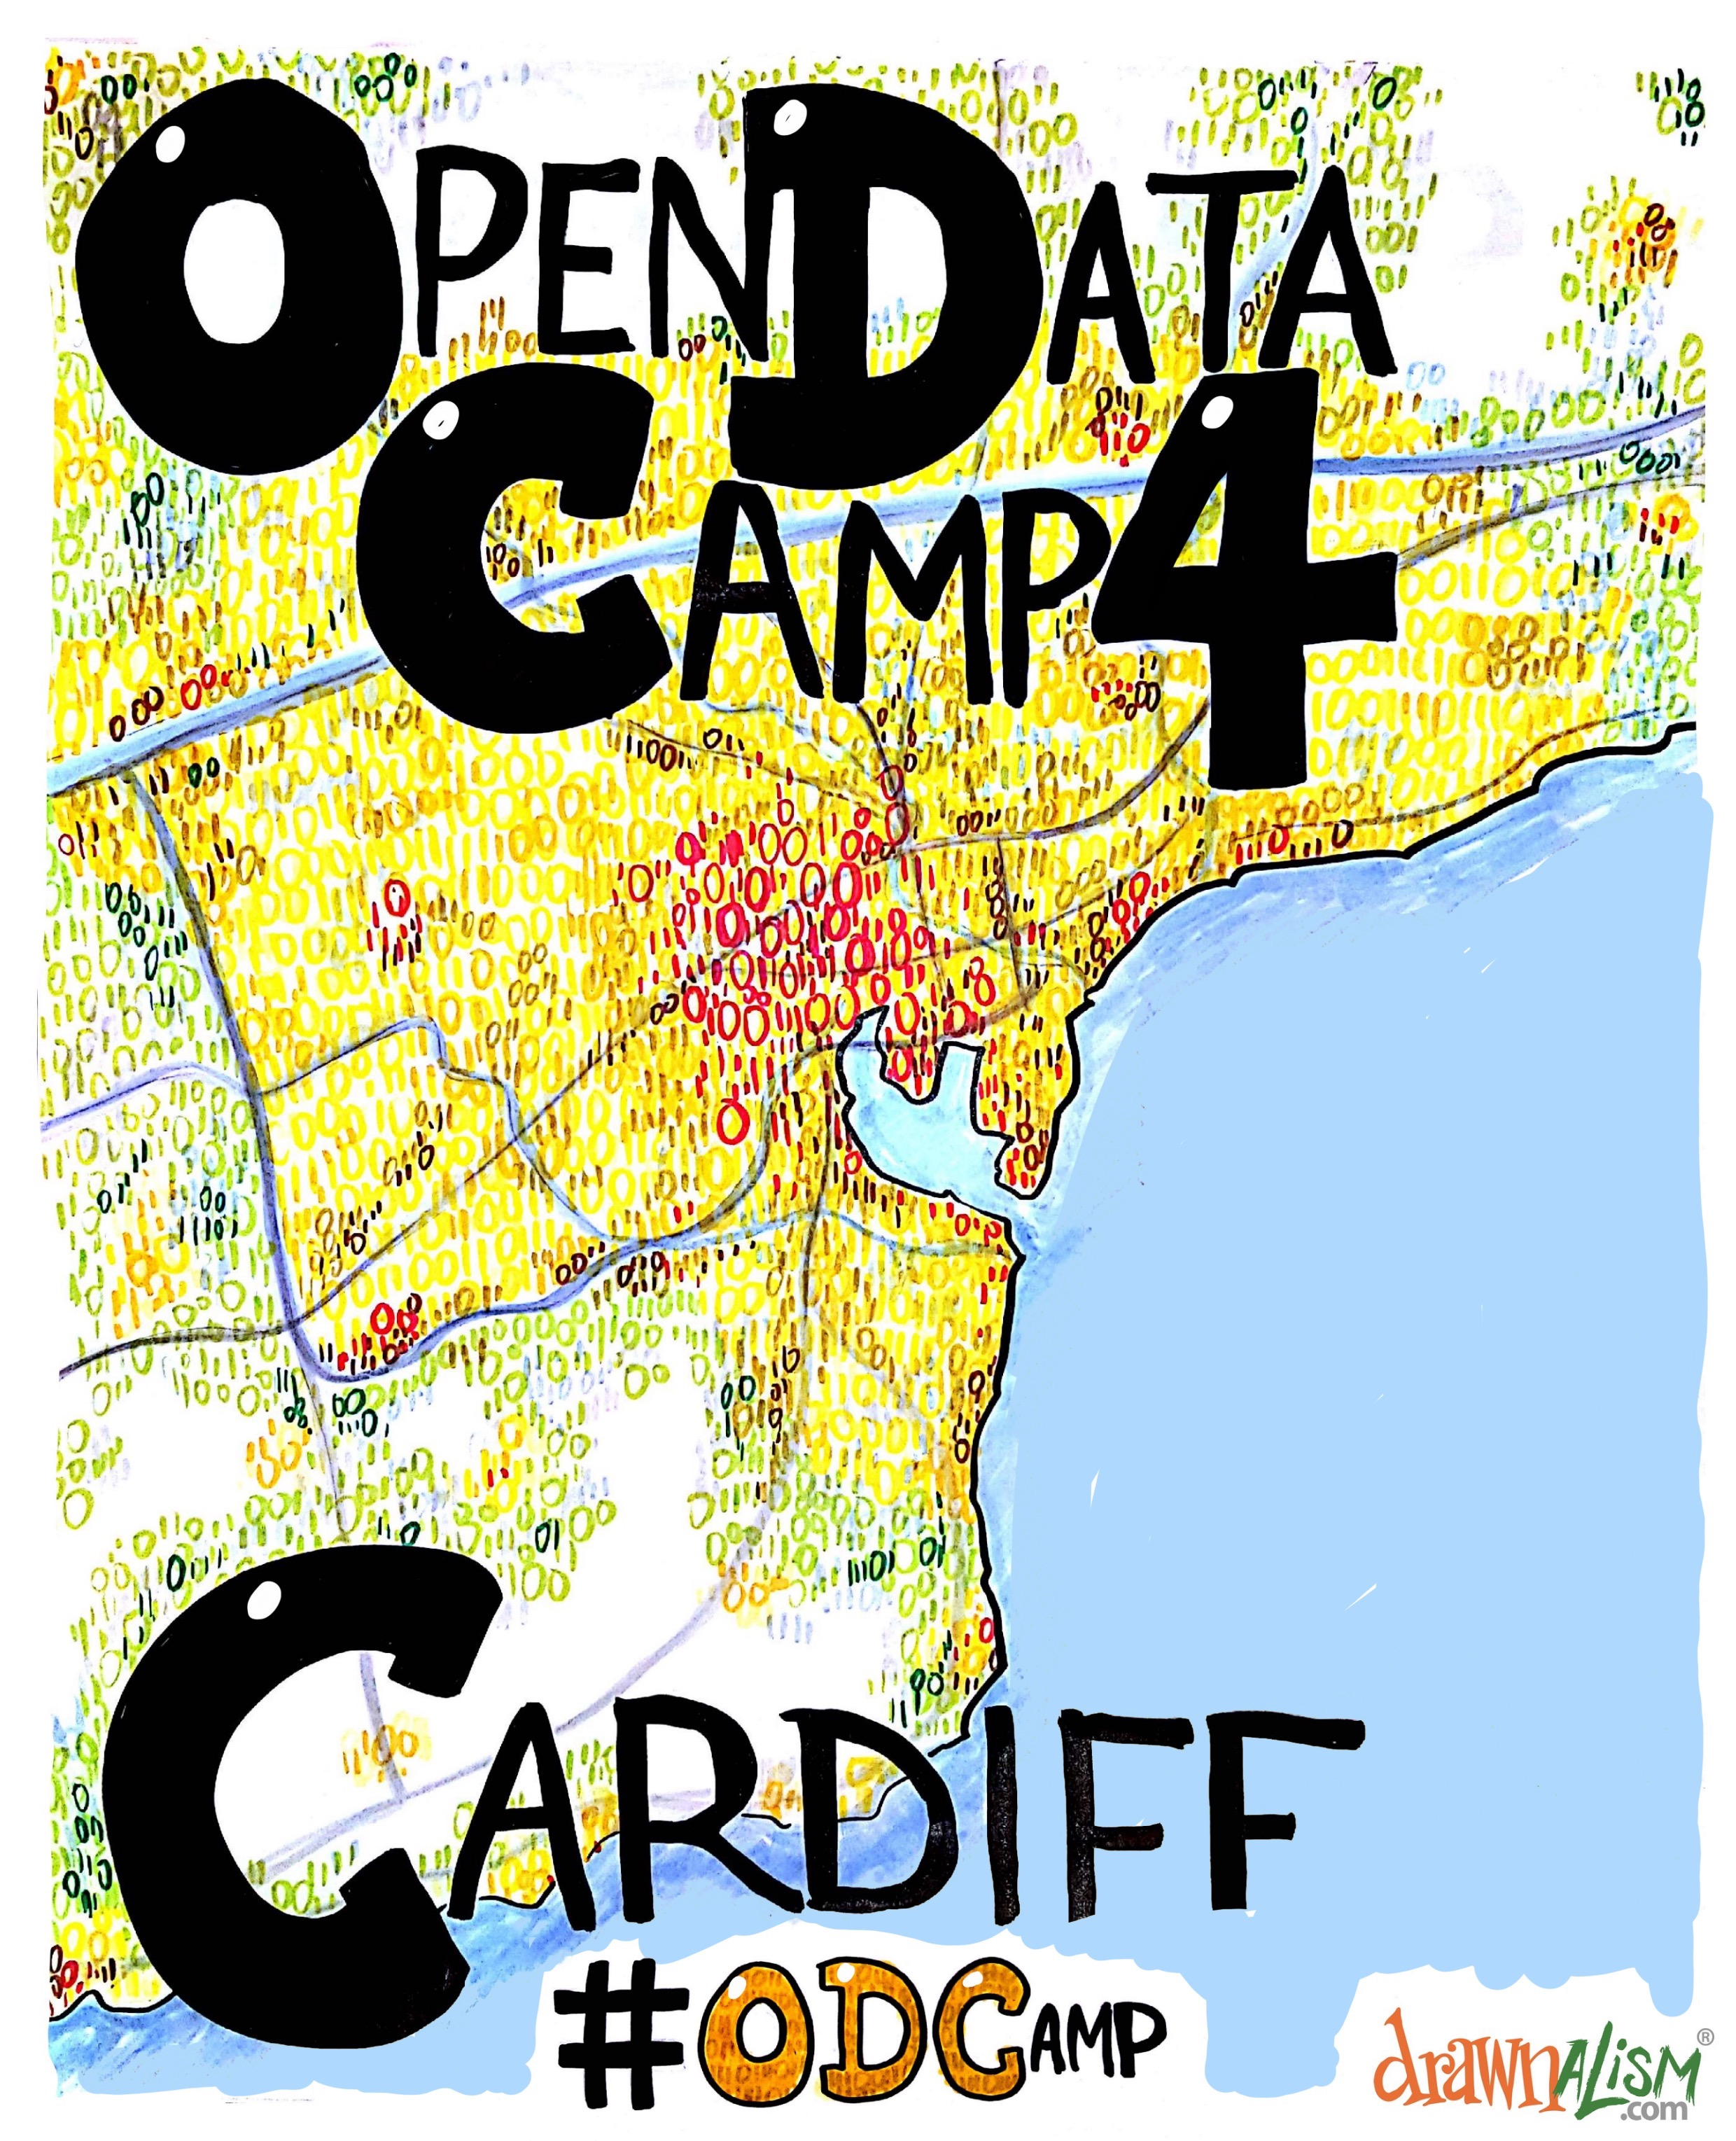 Announcing Open Data Camp 4